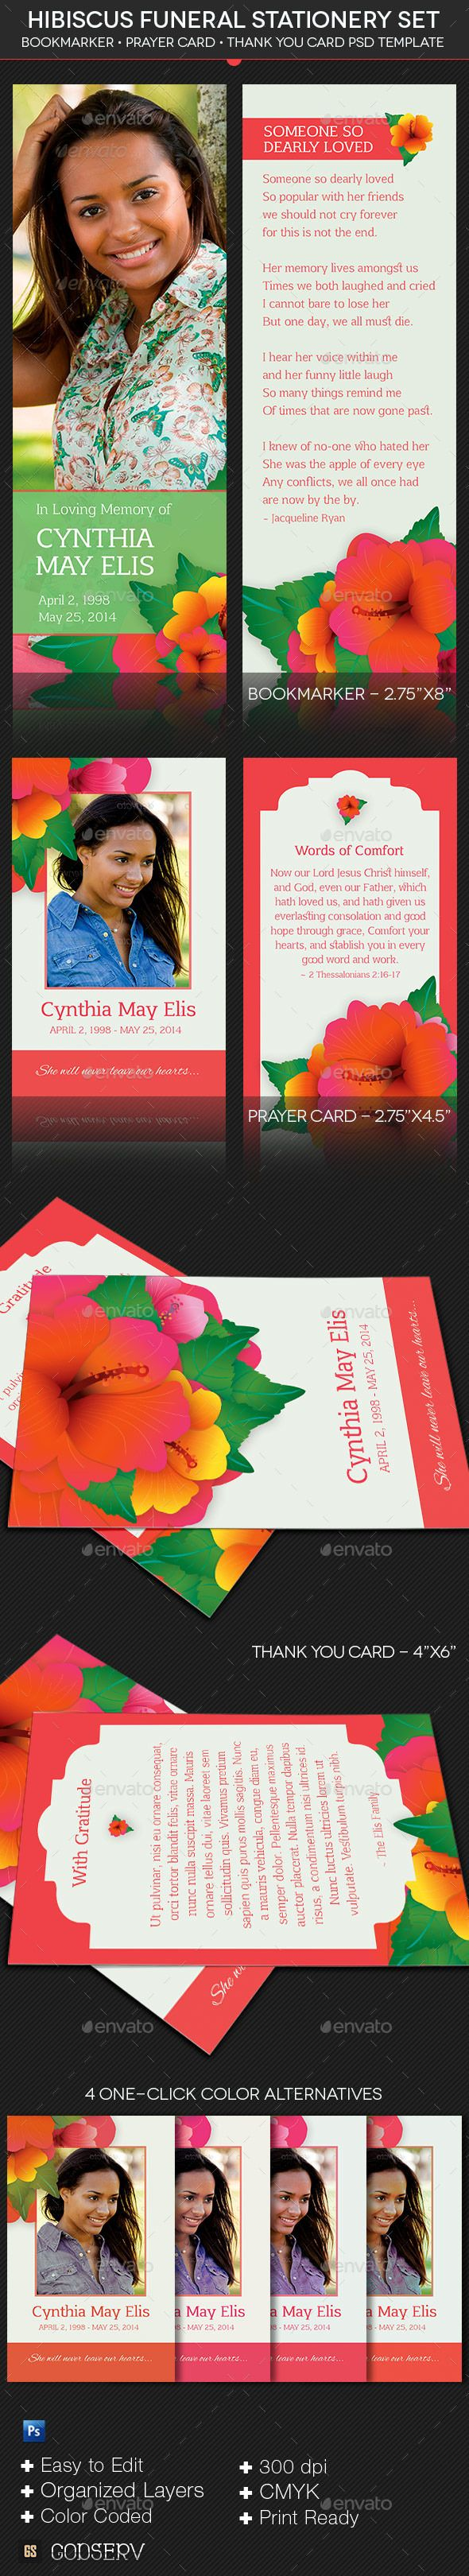 hibiscus funeral stationery template set stationery templates